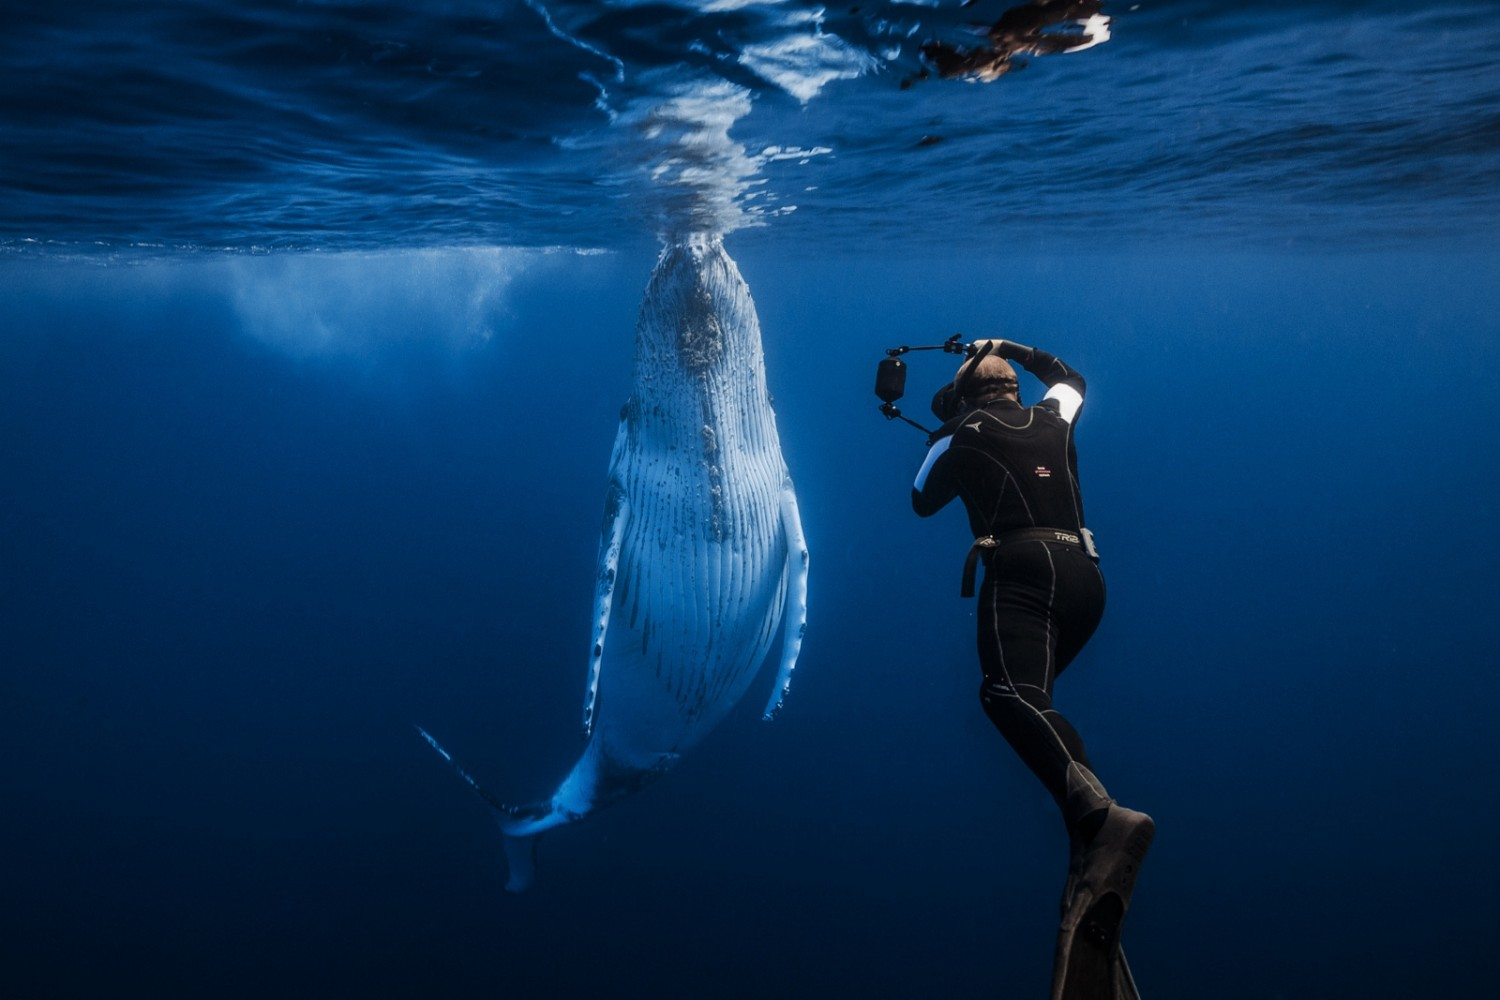 The Stories Behind the Most Breathtaking Whale Photos on 500px